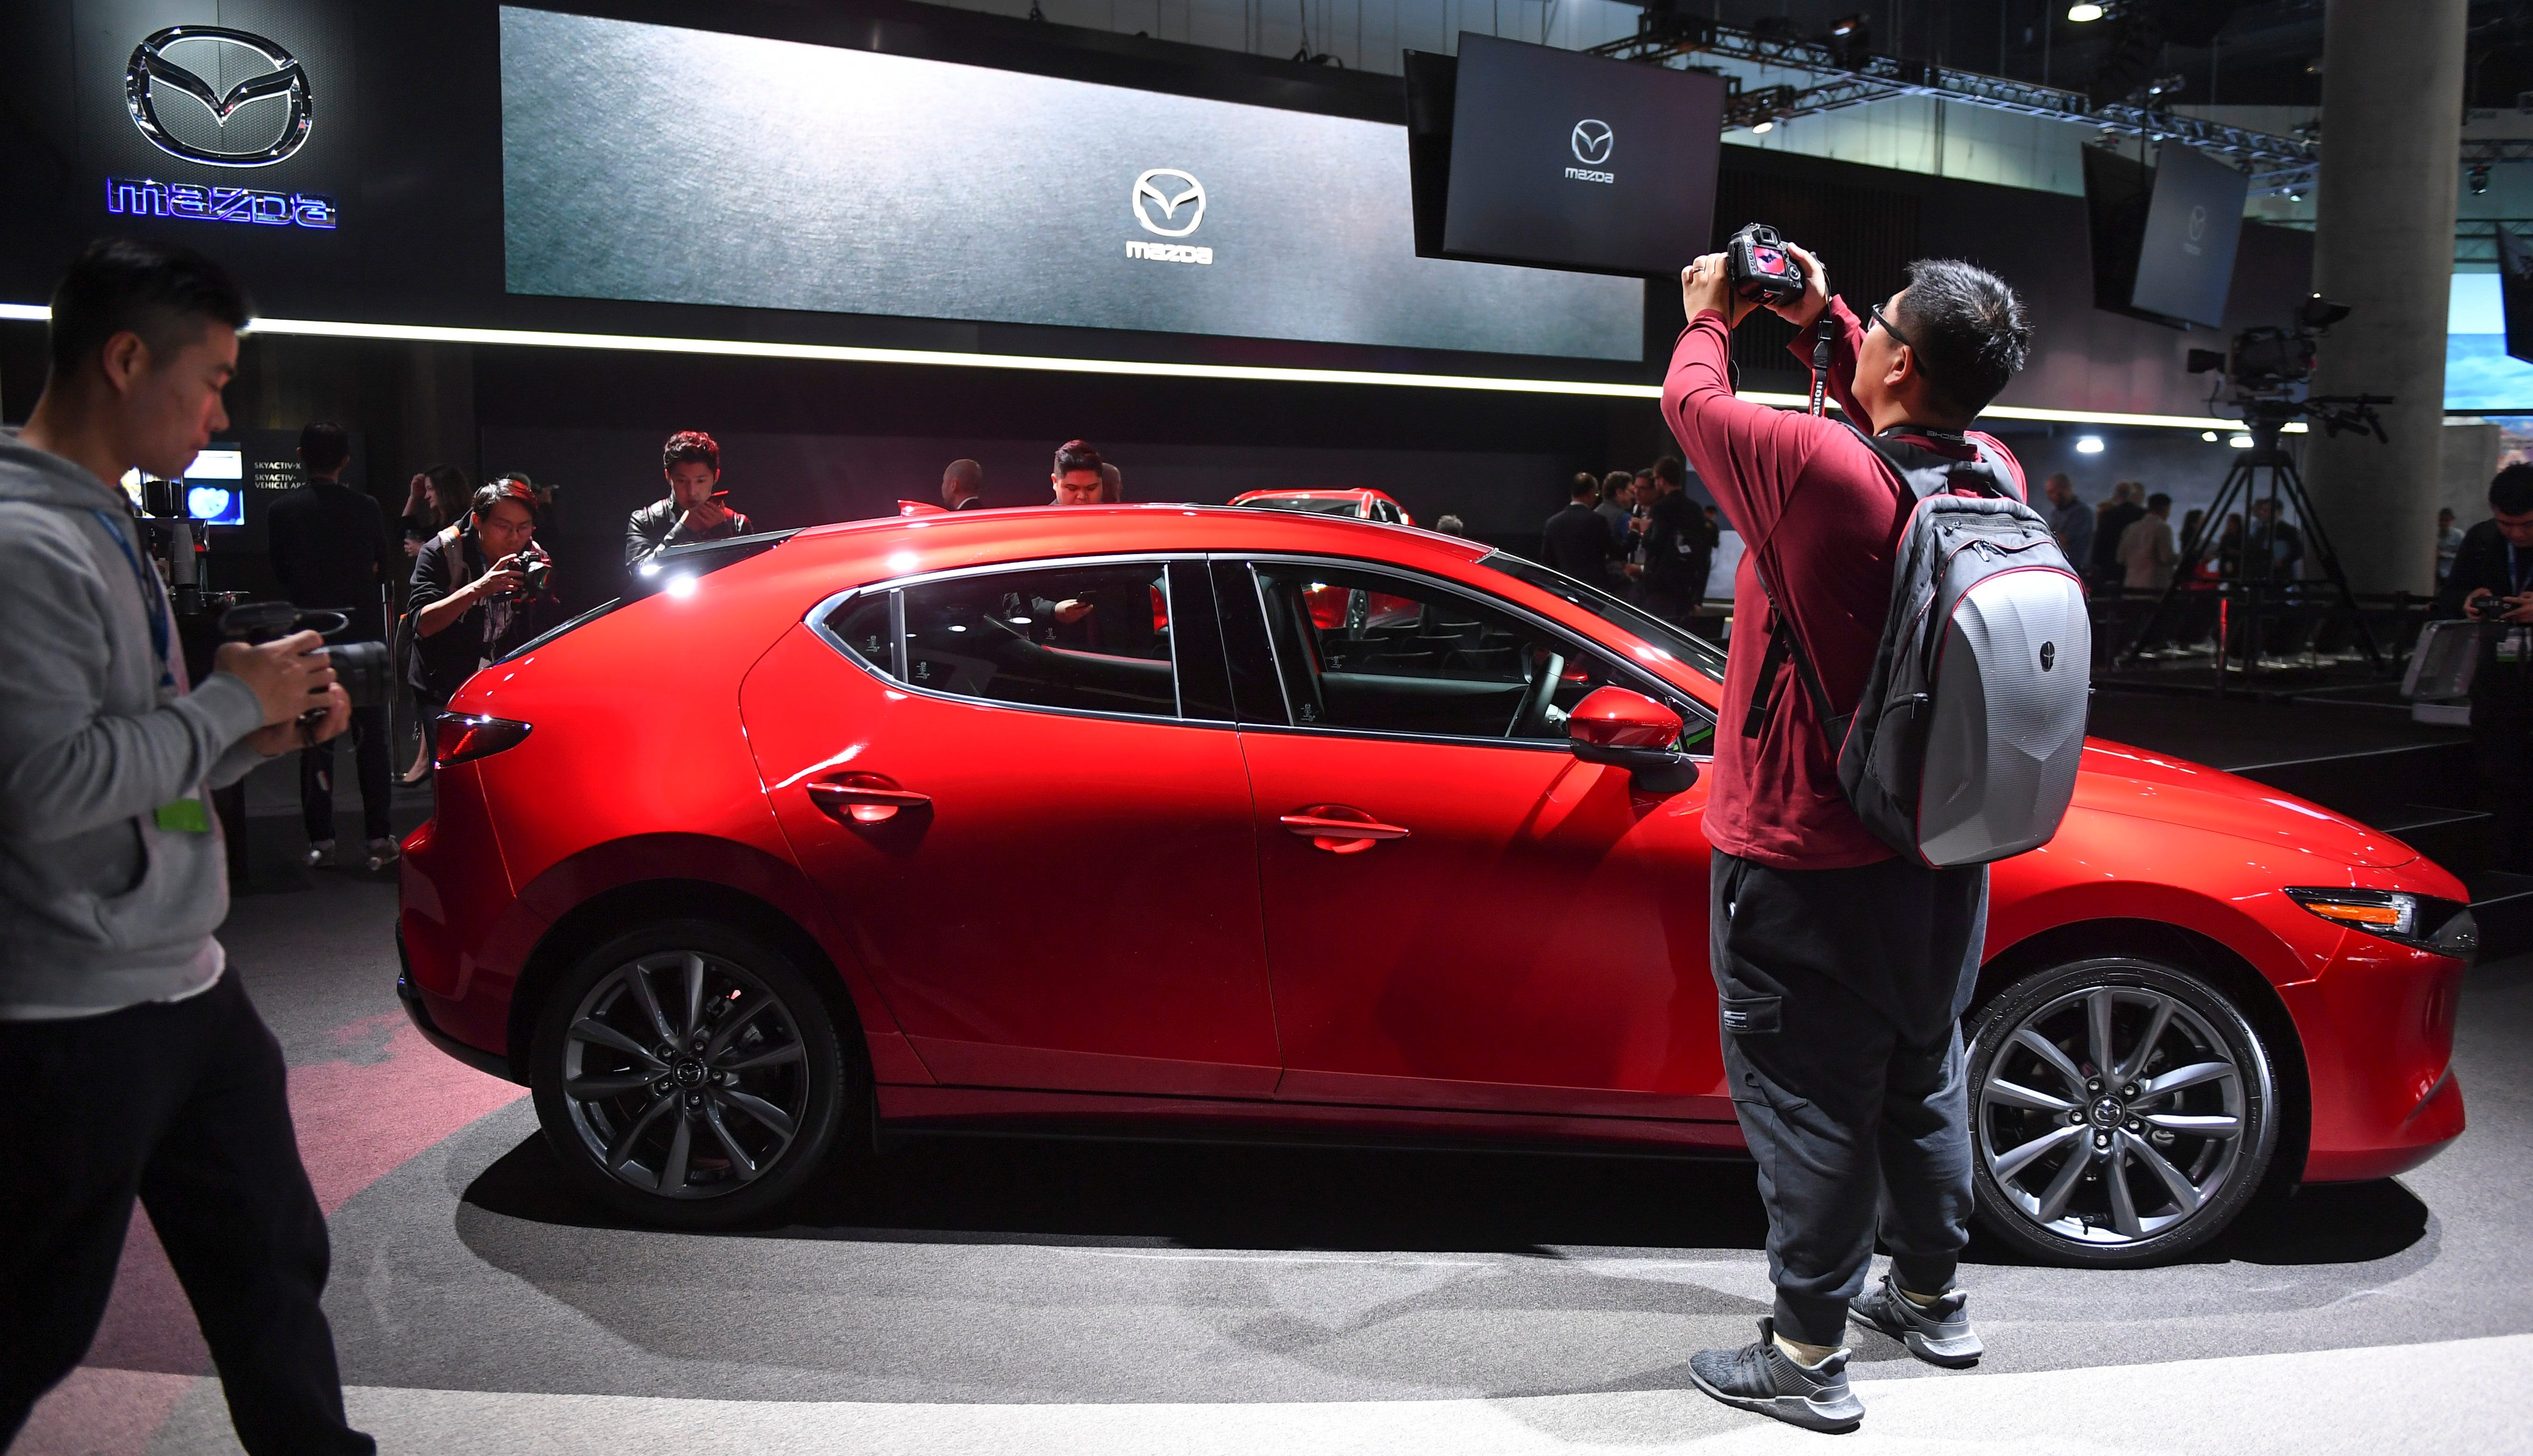 The Mazda 3 draws a crowd of photographers during press preview day at Los Angeles Auto Show.